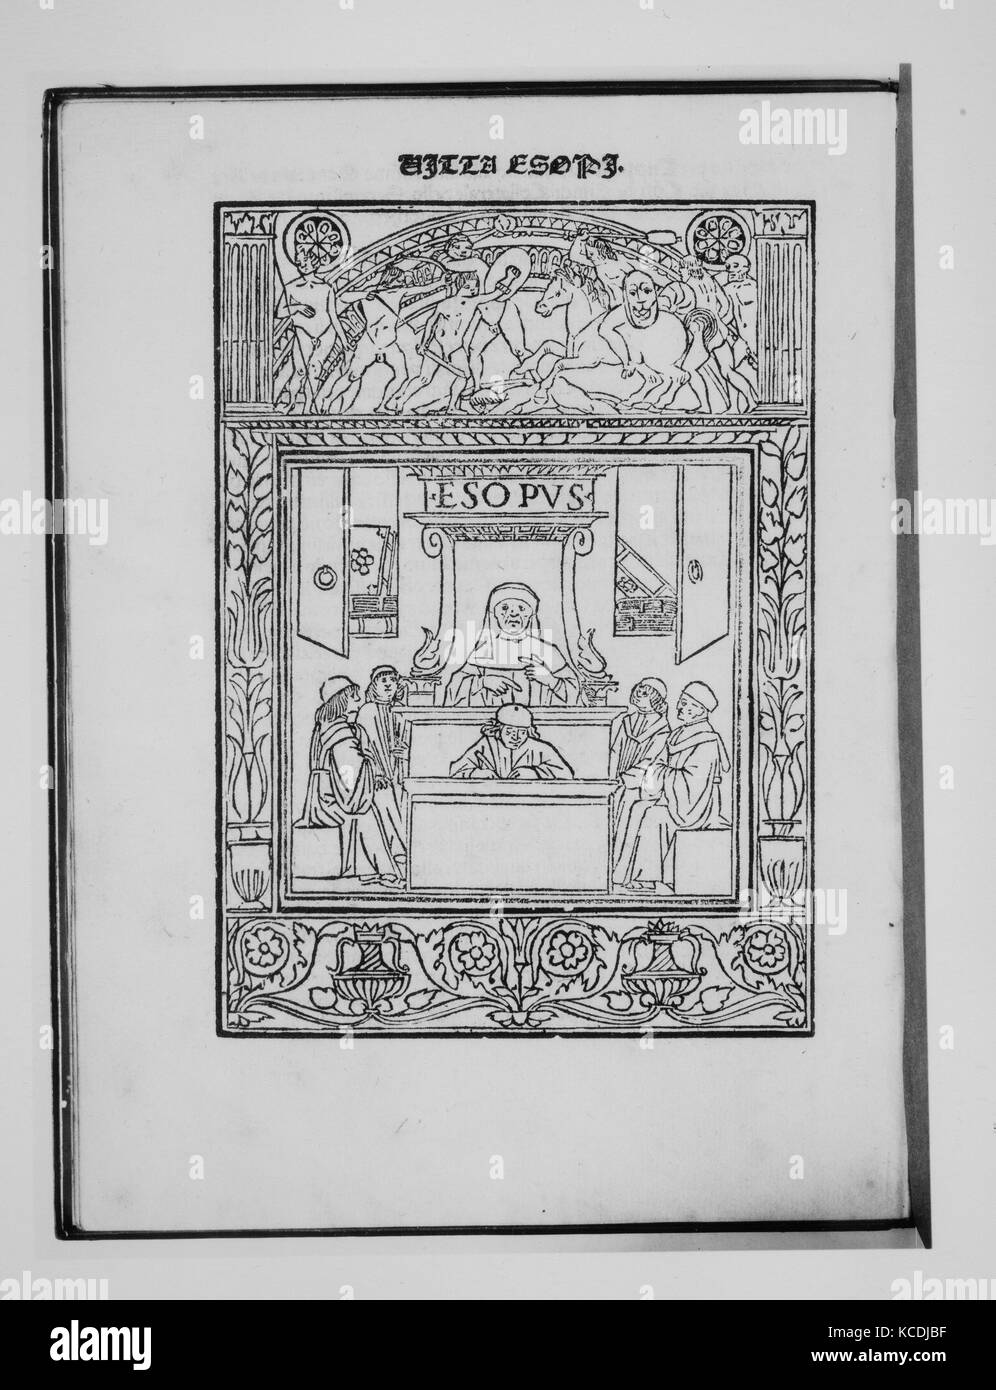 Vita Aesopi, March 27, 1492, Printed book with woodcut illustrations., Books - Stock Image